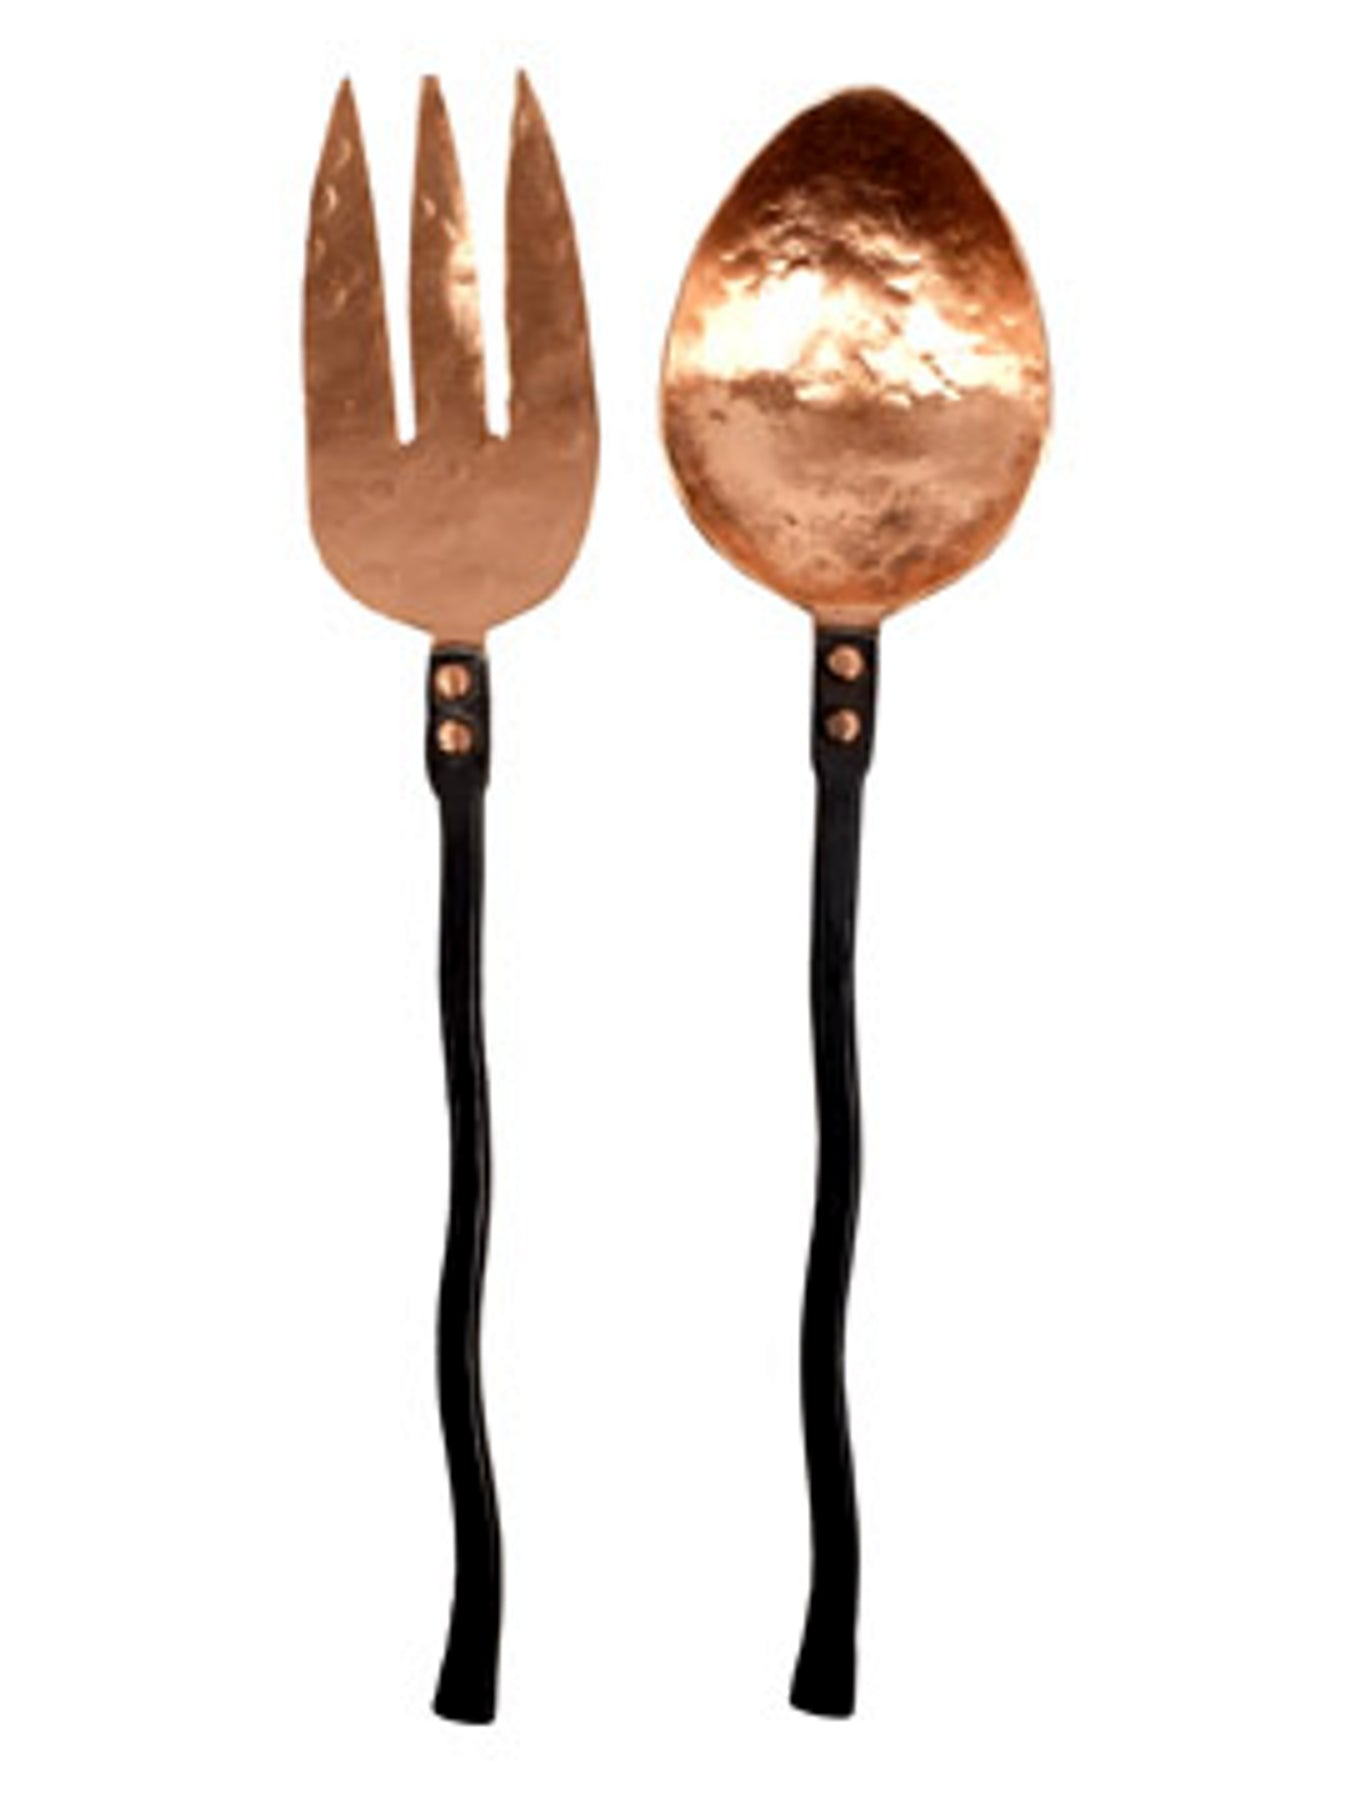 Handforged Copper Iron Serving Set